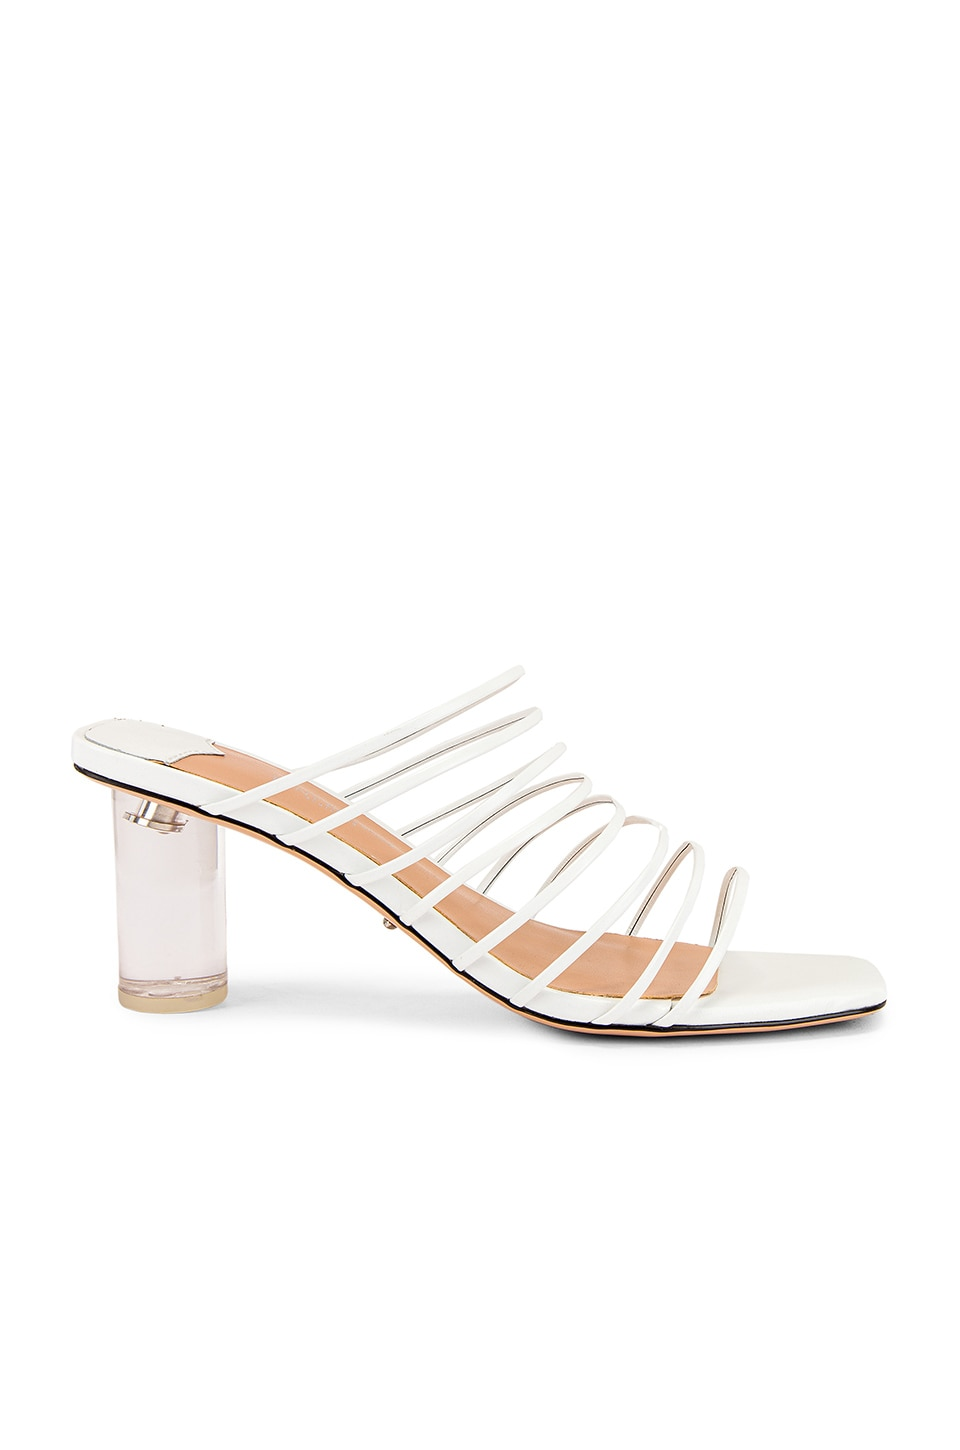 Tony Bianco Suri Sandal in White Kid